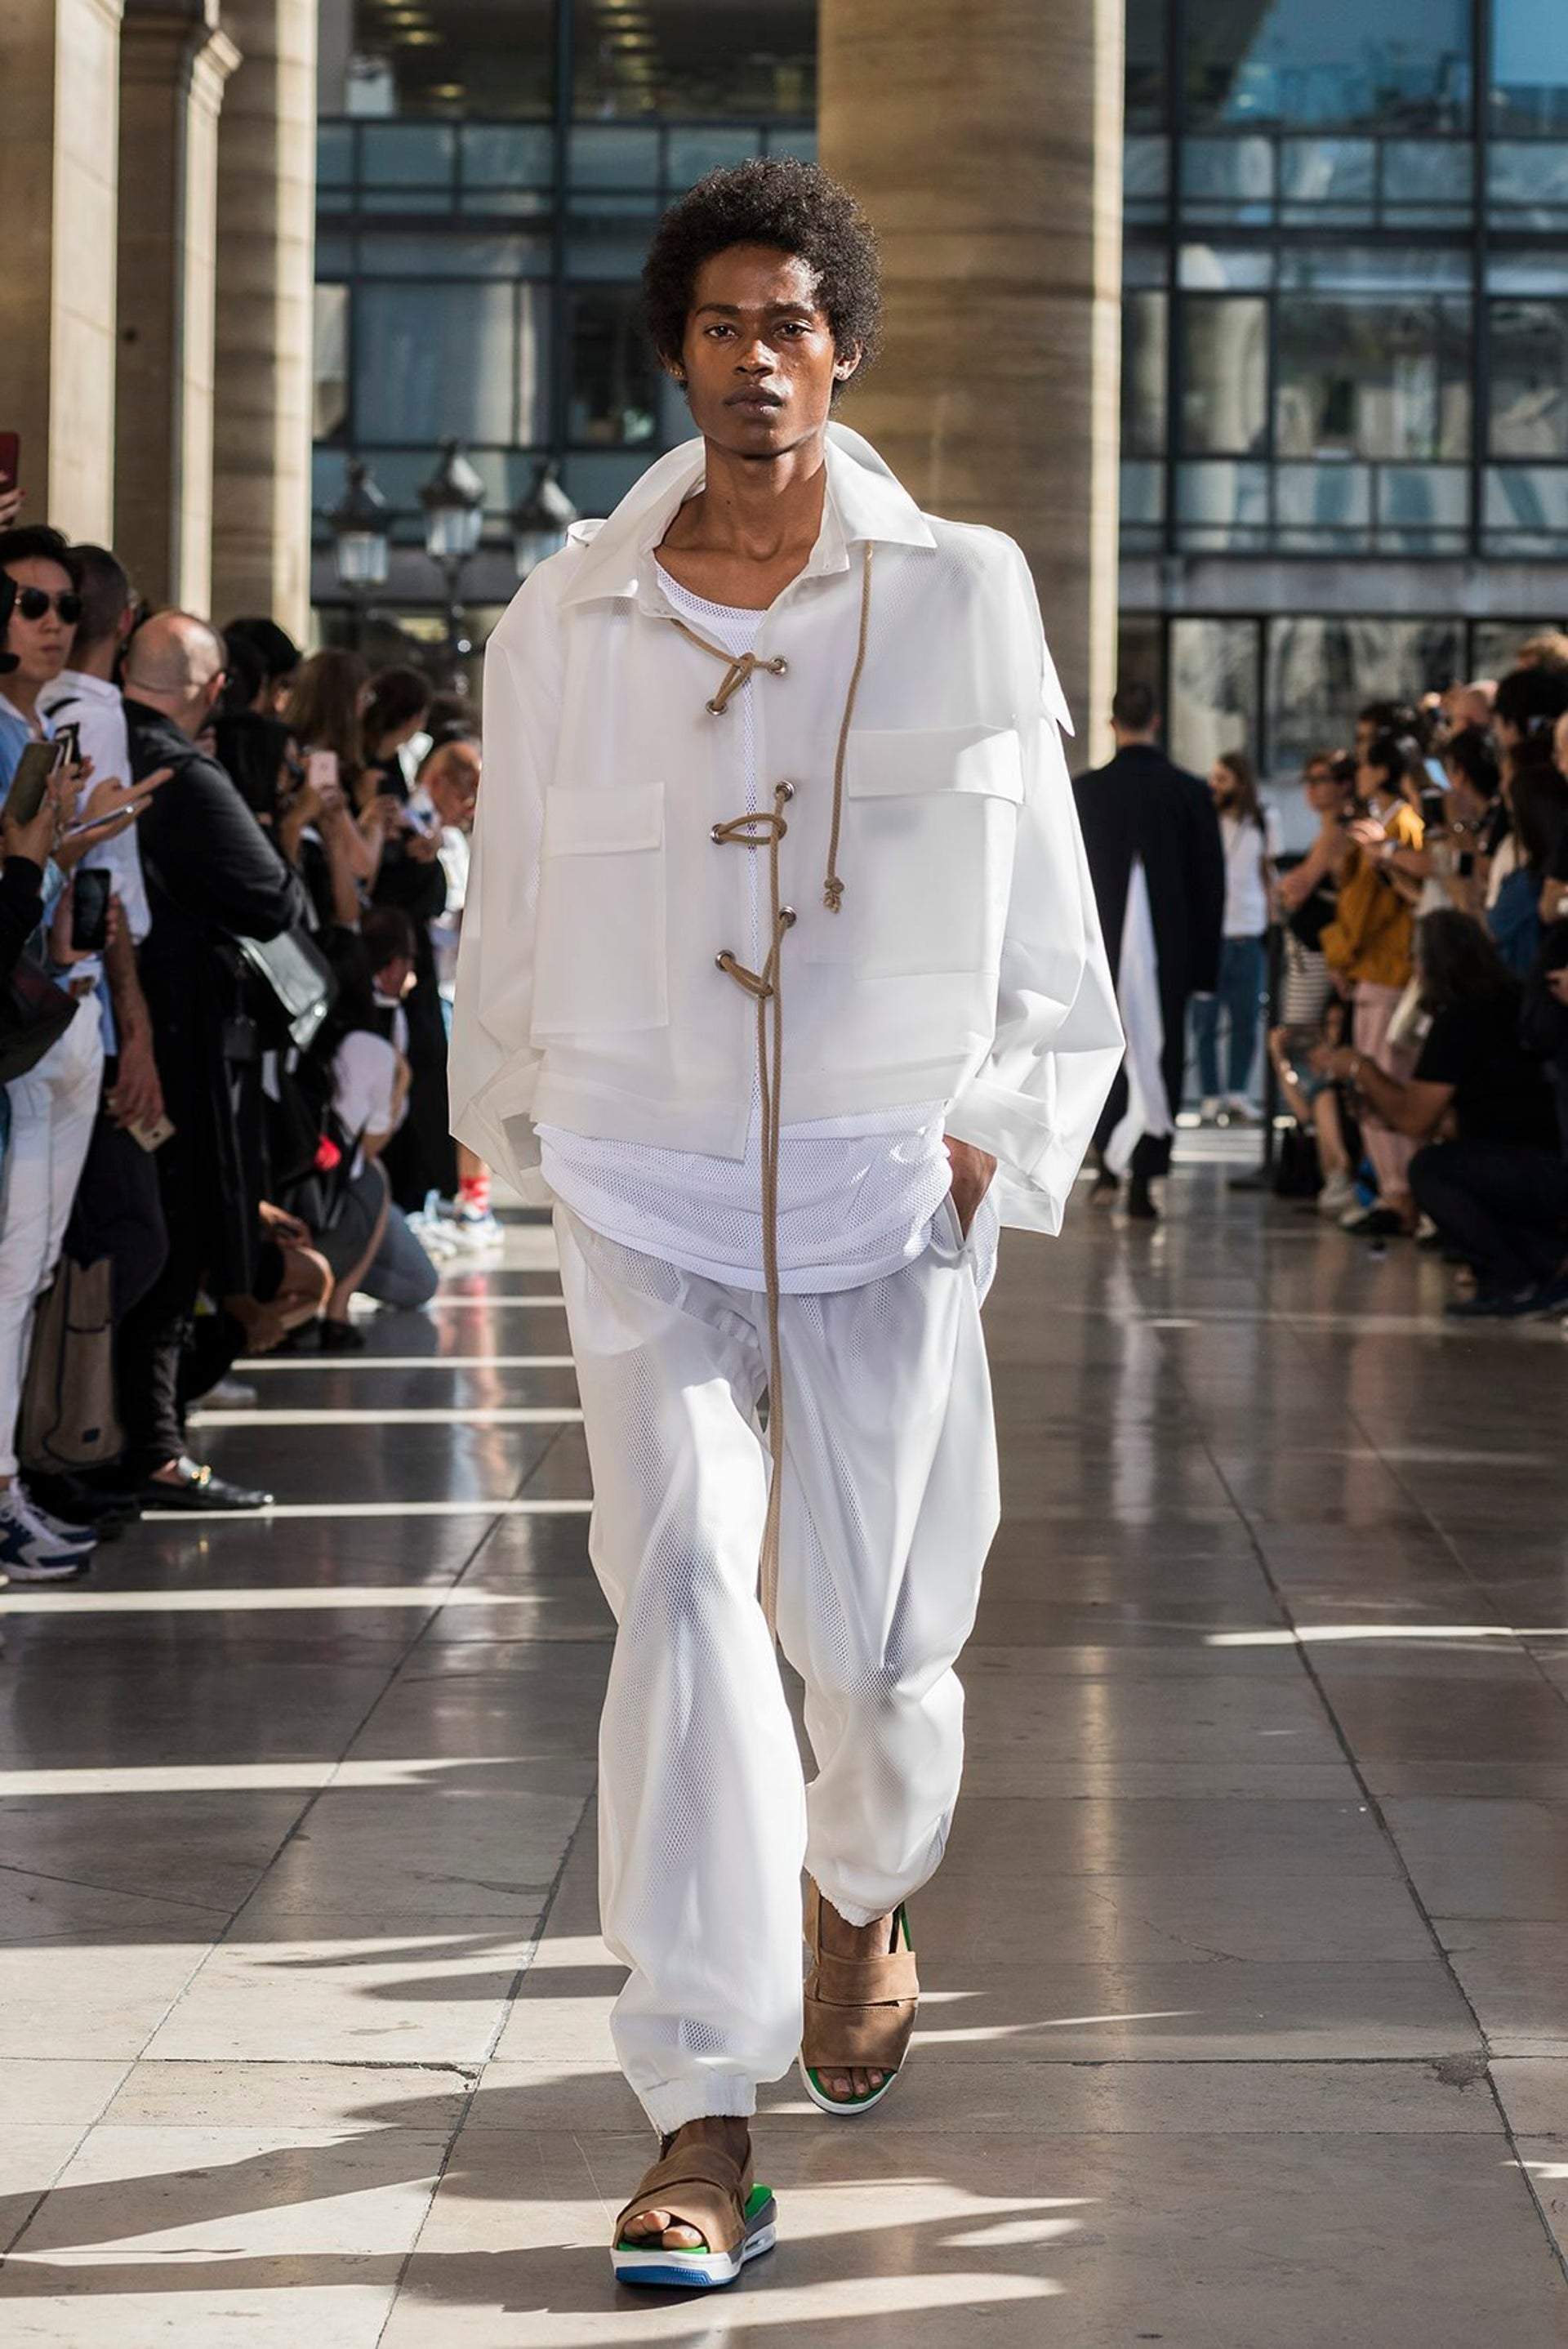 Hed Mayner's spring/summer 2018 menswear collection at Paris fashion week.